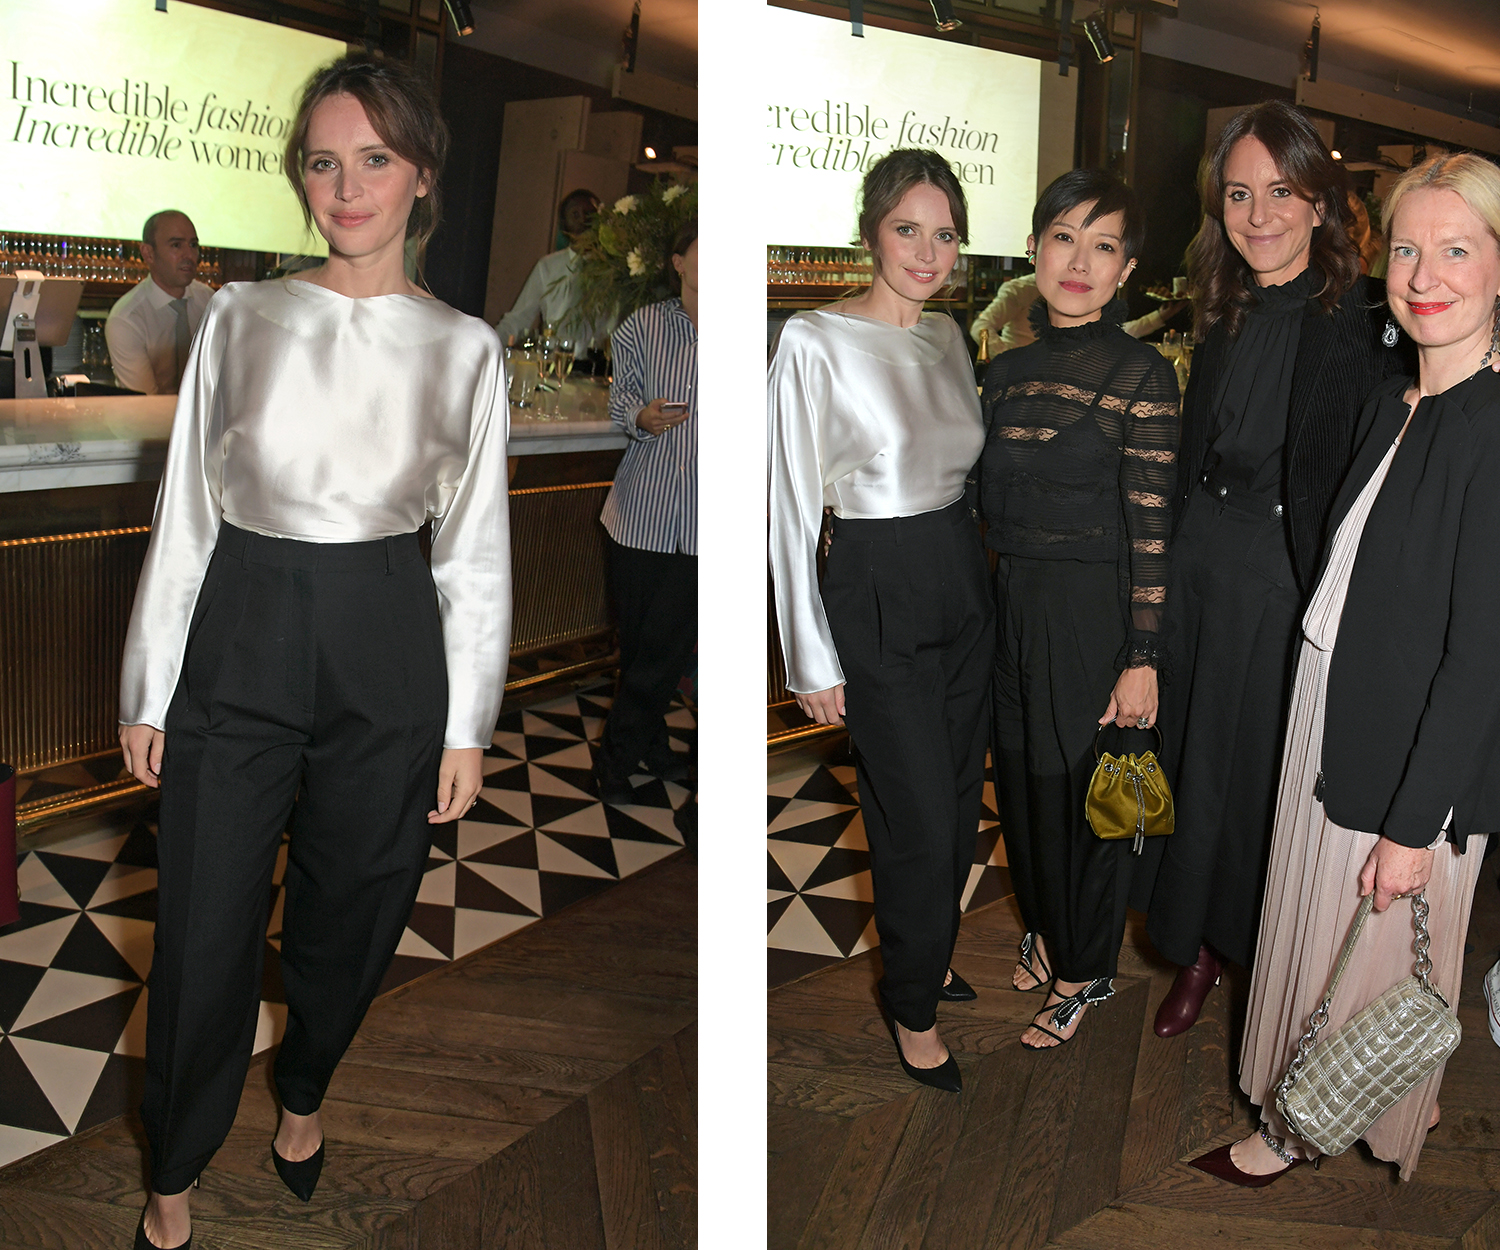 Left, Felicity Jones, right, Felicity Jones, Sandra Choi, Alison Loehnis, Sarah Bailey